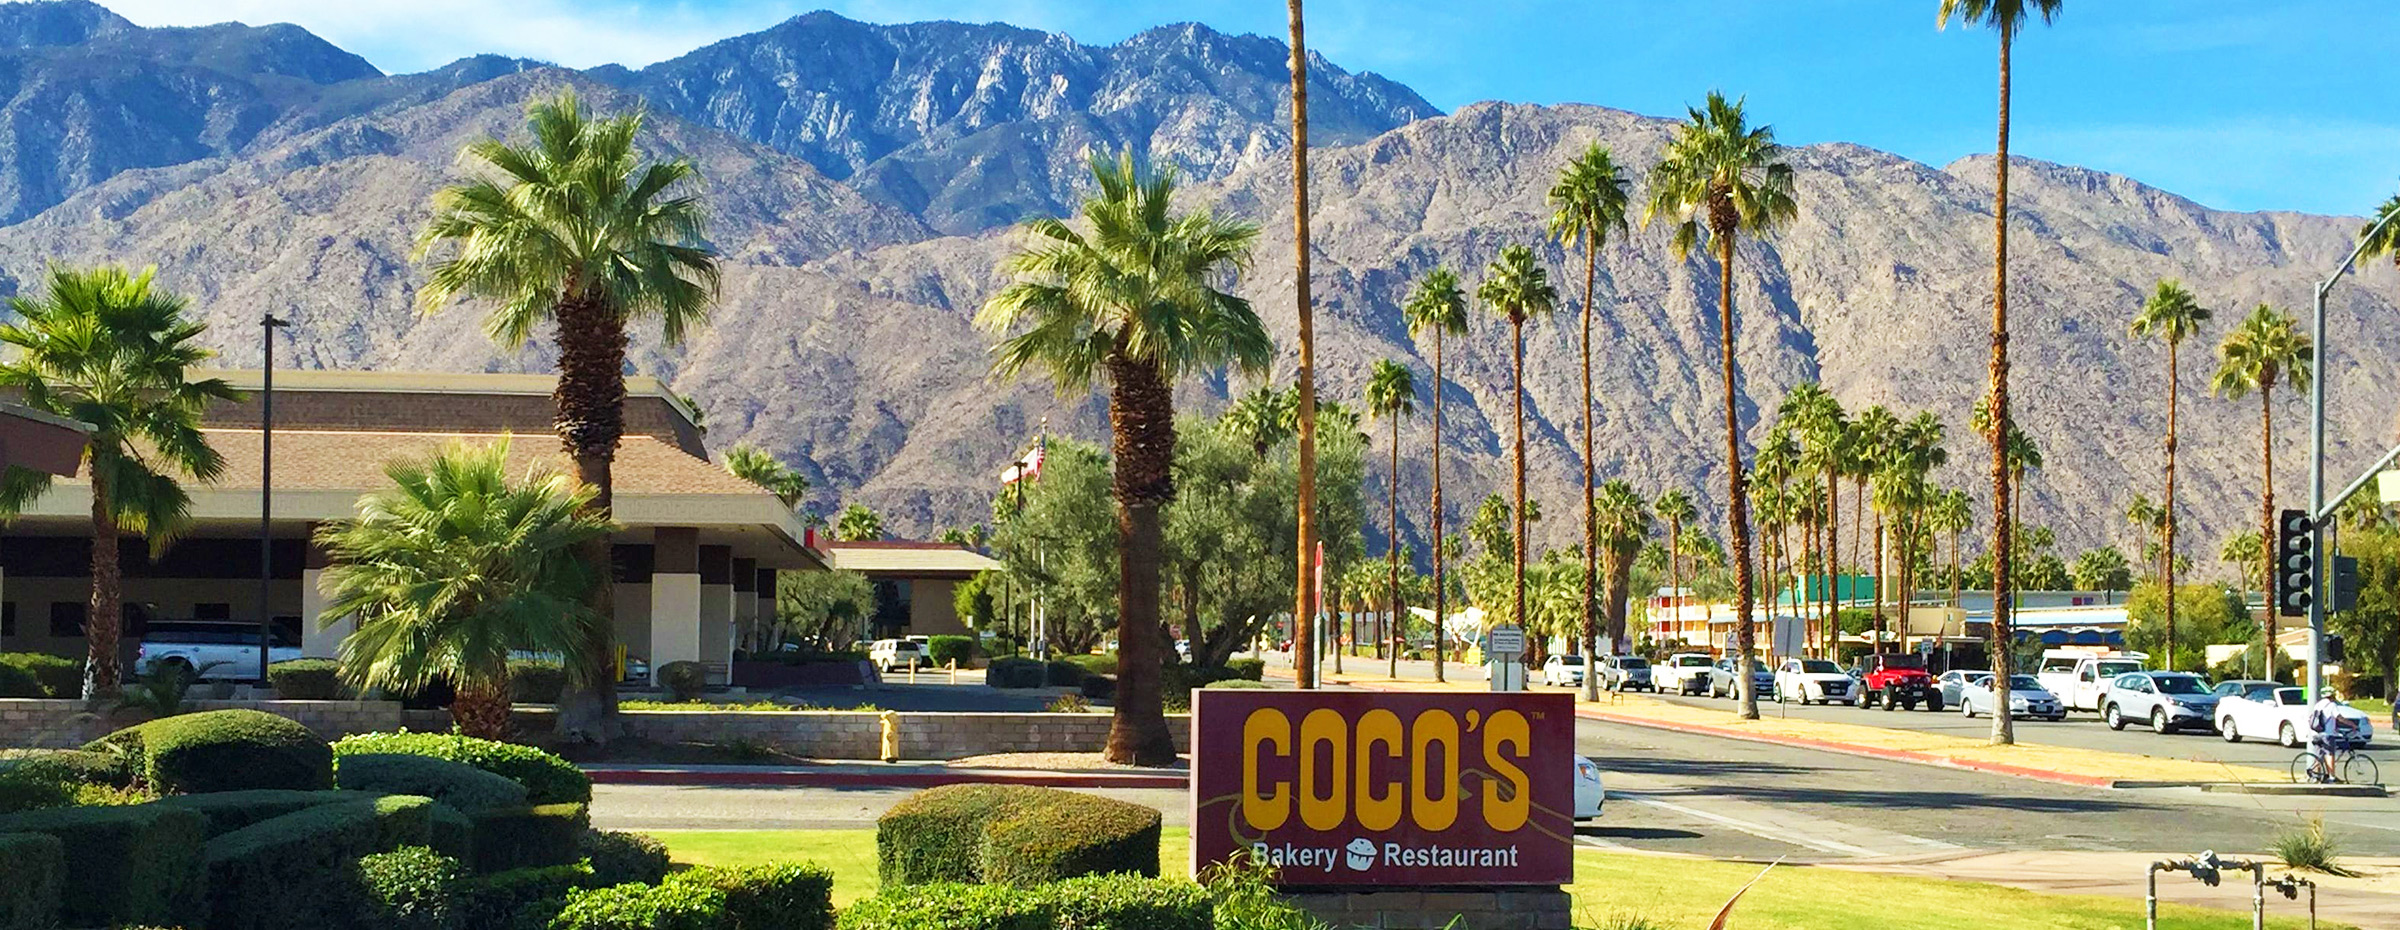 Is Cocos Restaurant Open On Christmas Day 2020? Home   Coco's